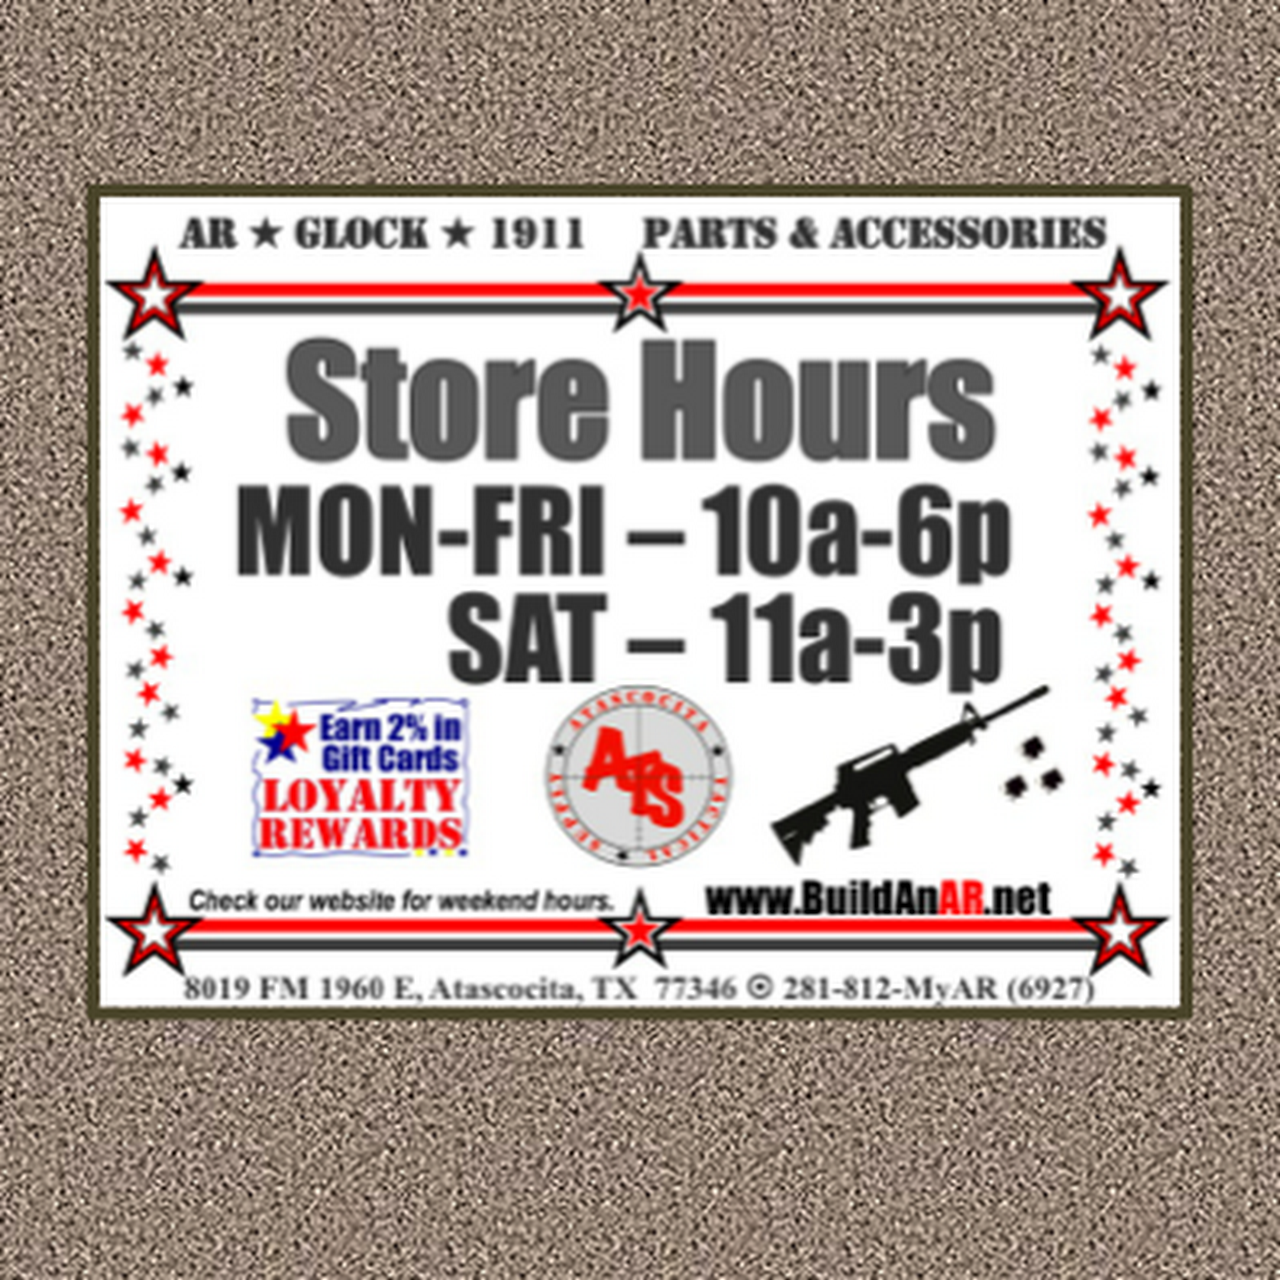 Atascocita Tactical Supply - Sporting Goods Store in Humble